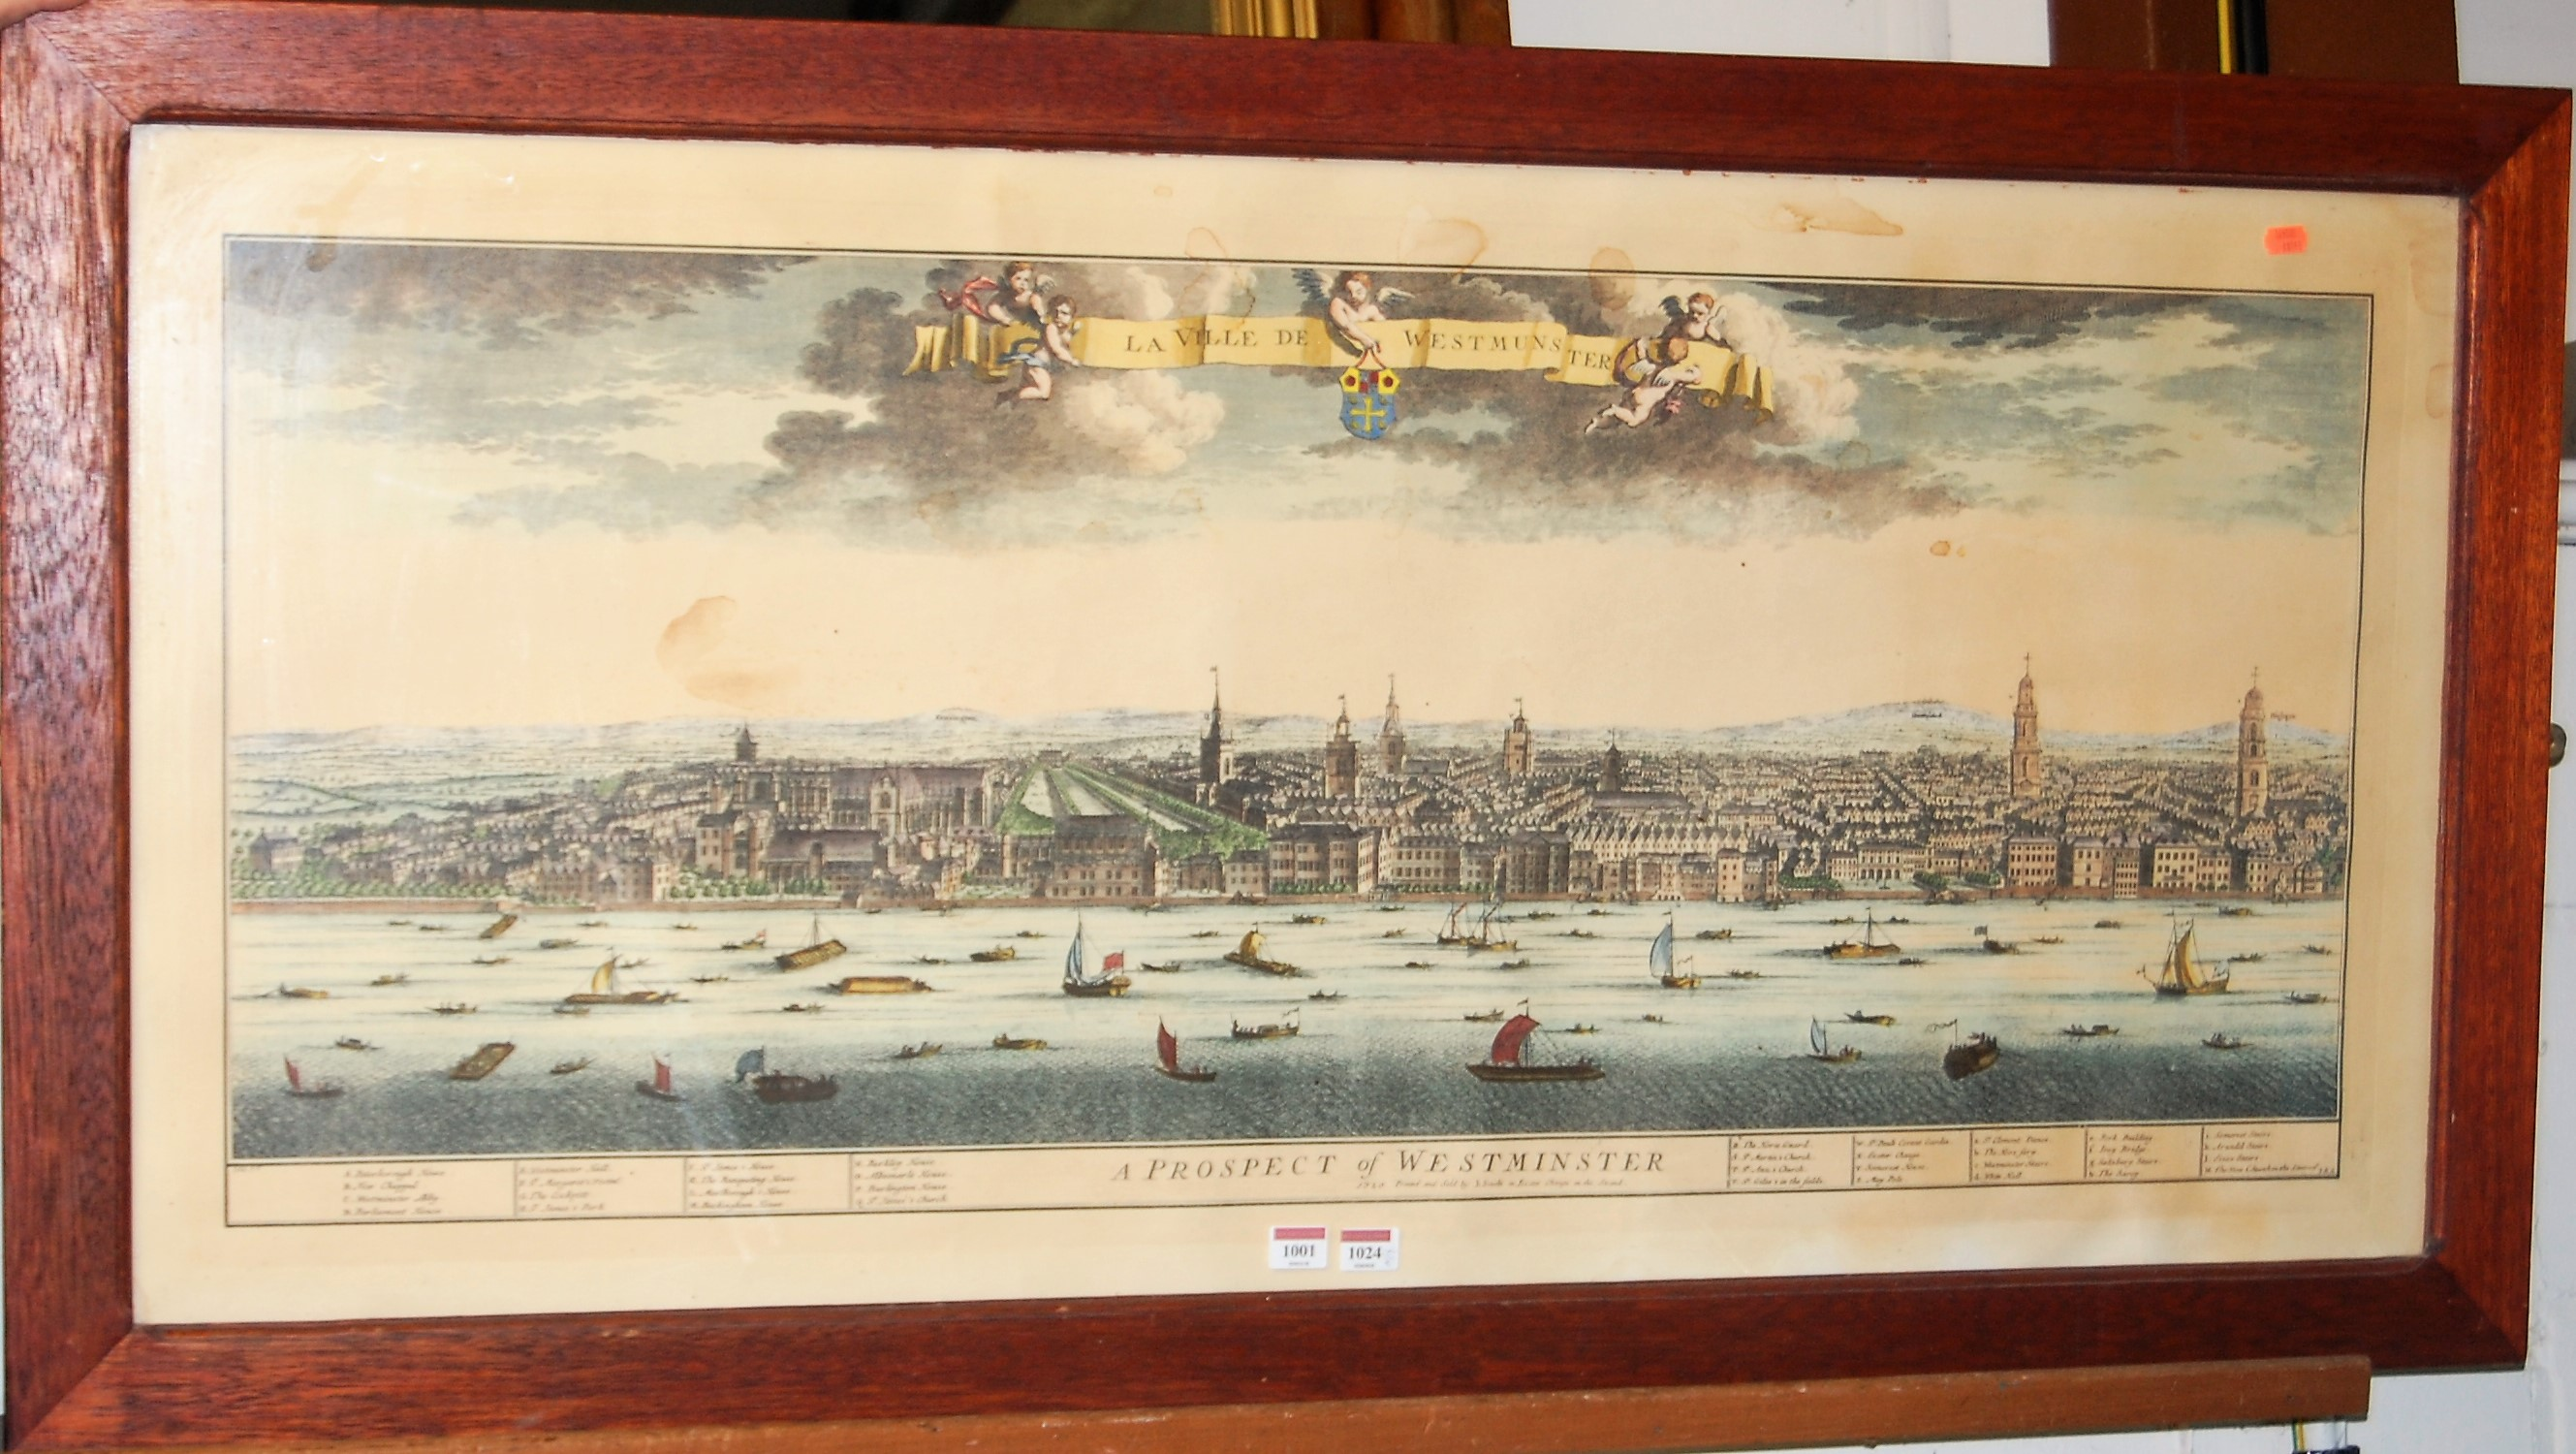 Lot 1001 - A Prospect of Westminster, reproduction topographical engraving, 52 x 115cm